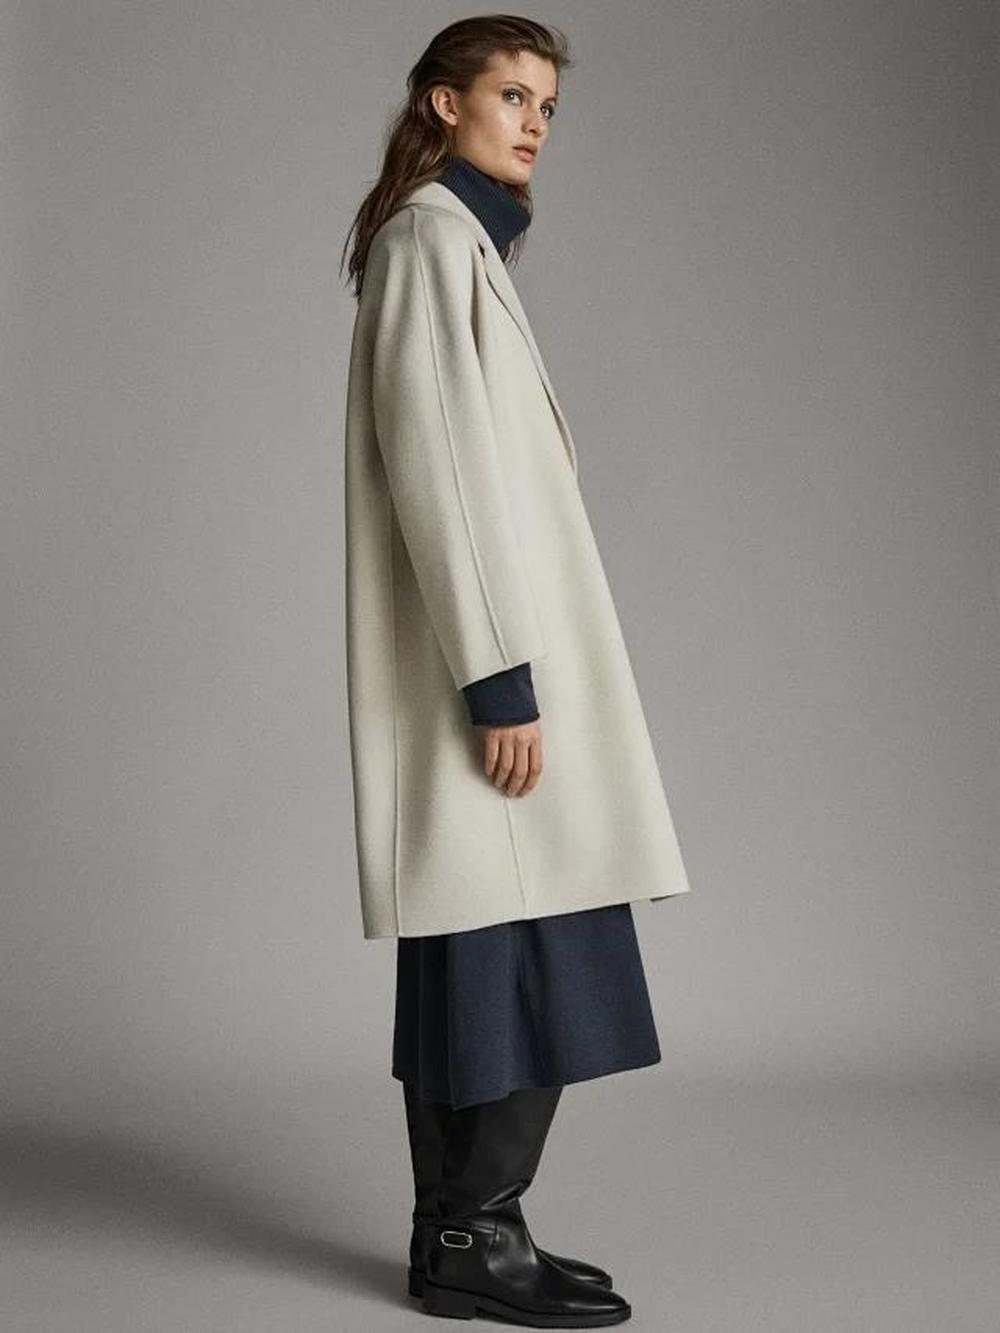 New Autumn Winter Handmade Women's Mid-length Double-sided Wool Turn-down Collar Single Breasted Office Lady Coat White Blue